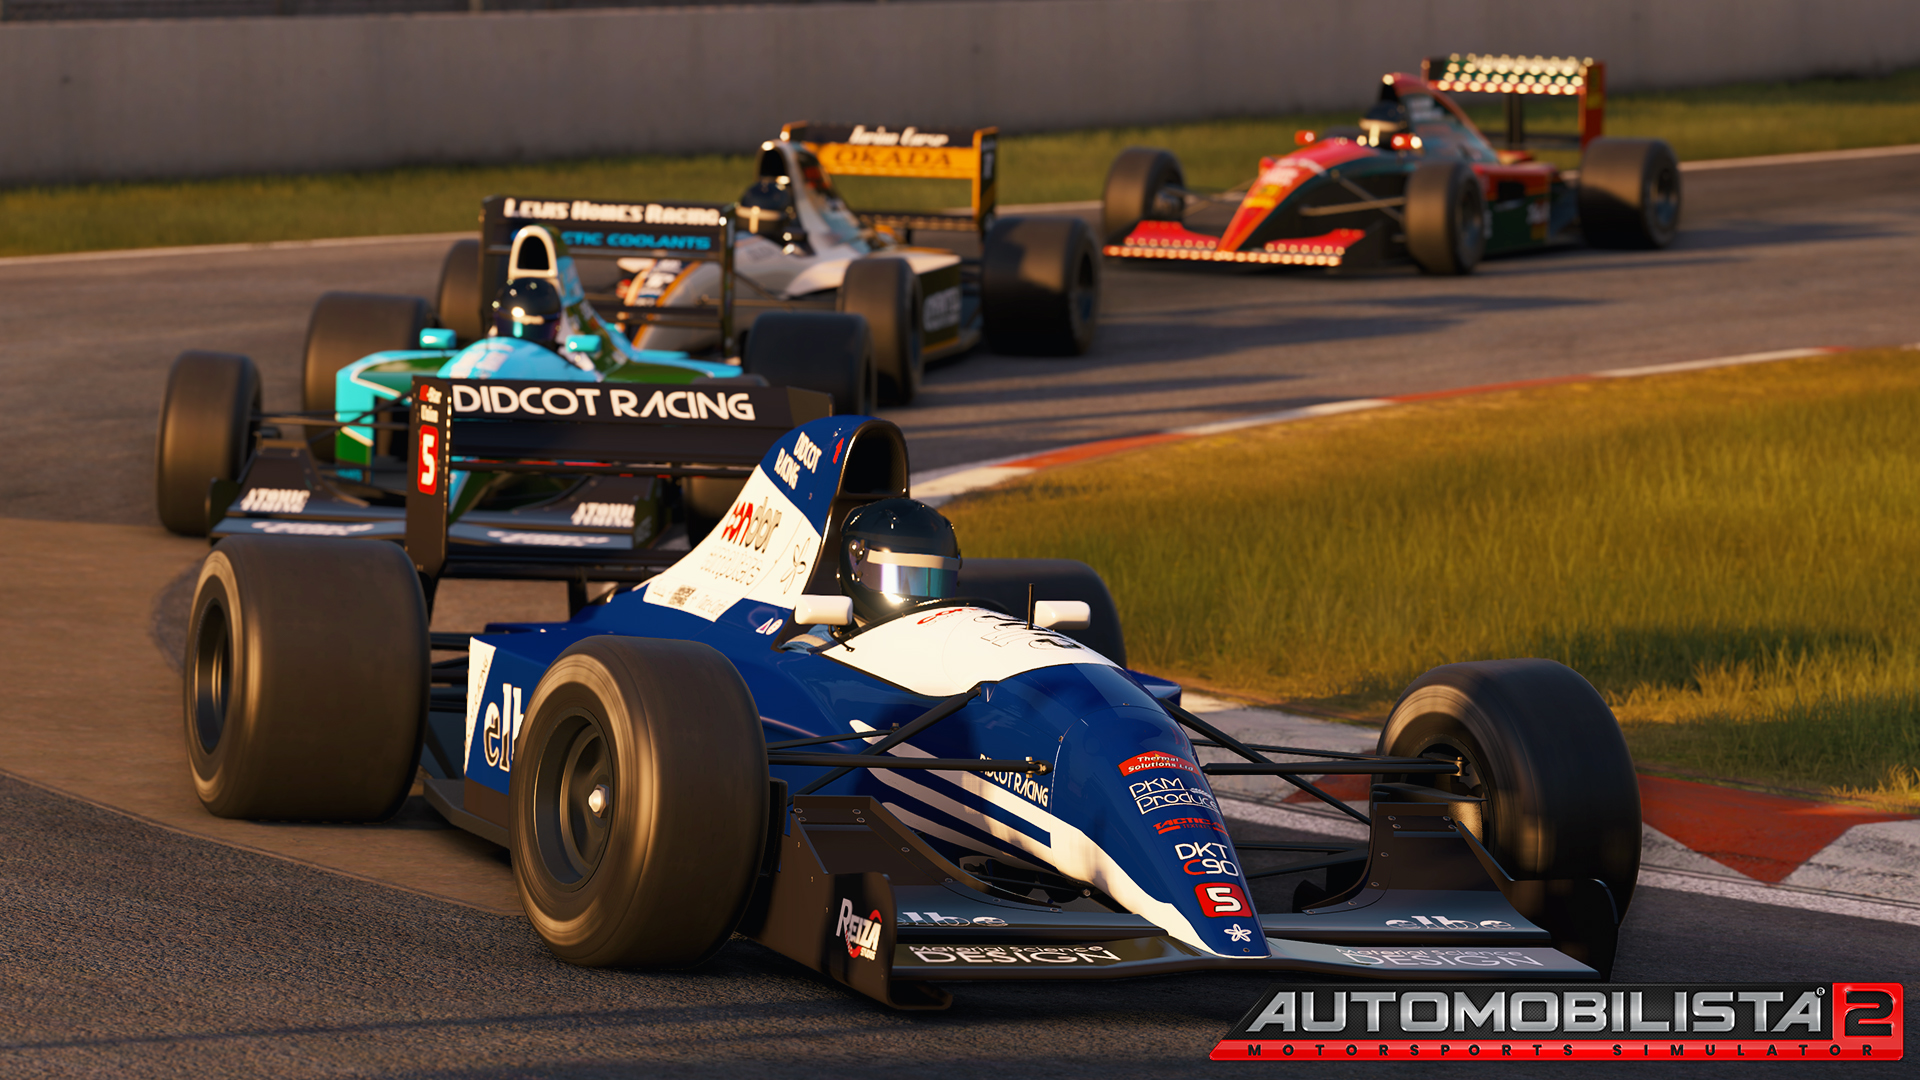 Automobilista 2: Reiza busted for ripping Project Cars 2